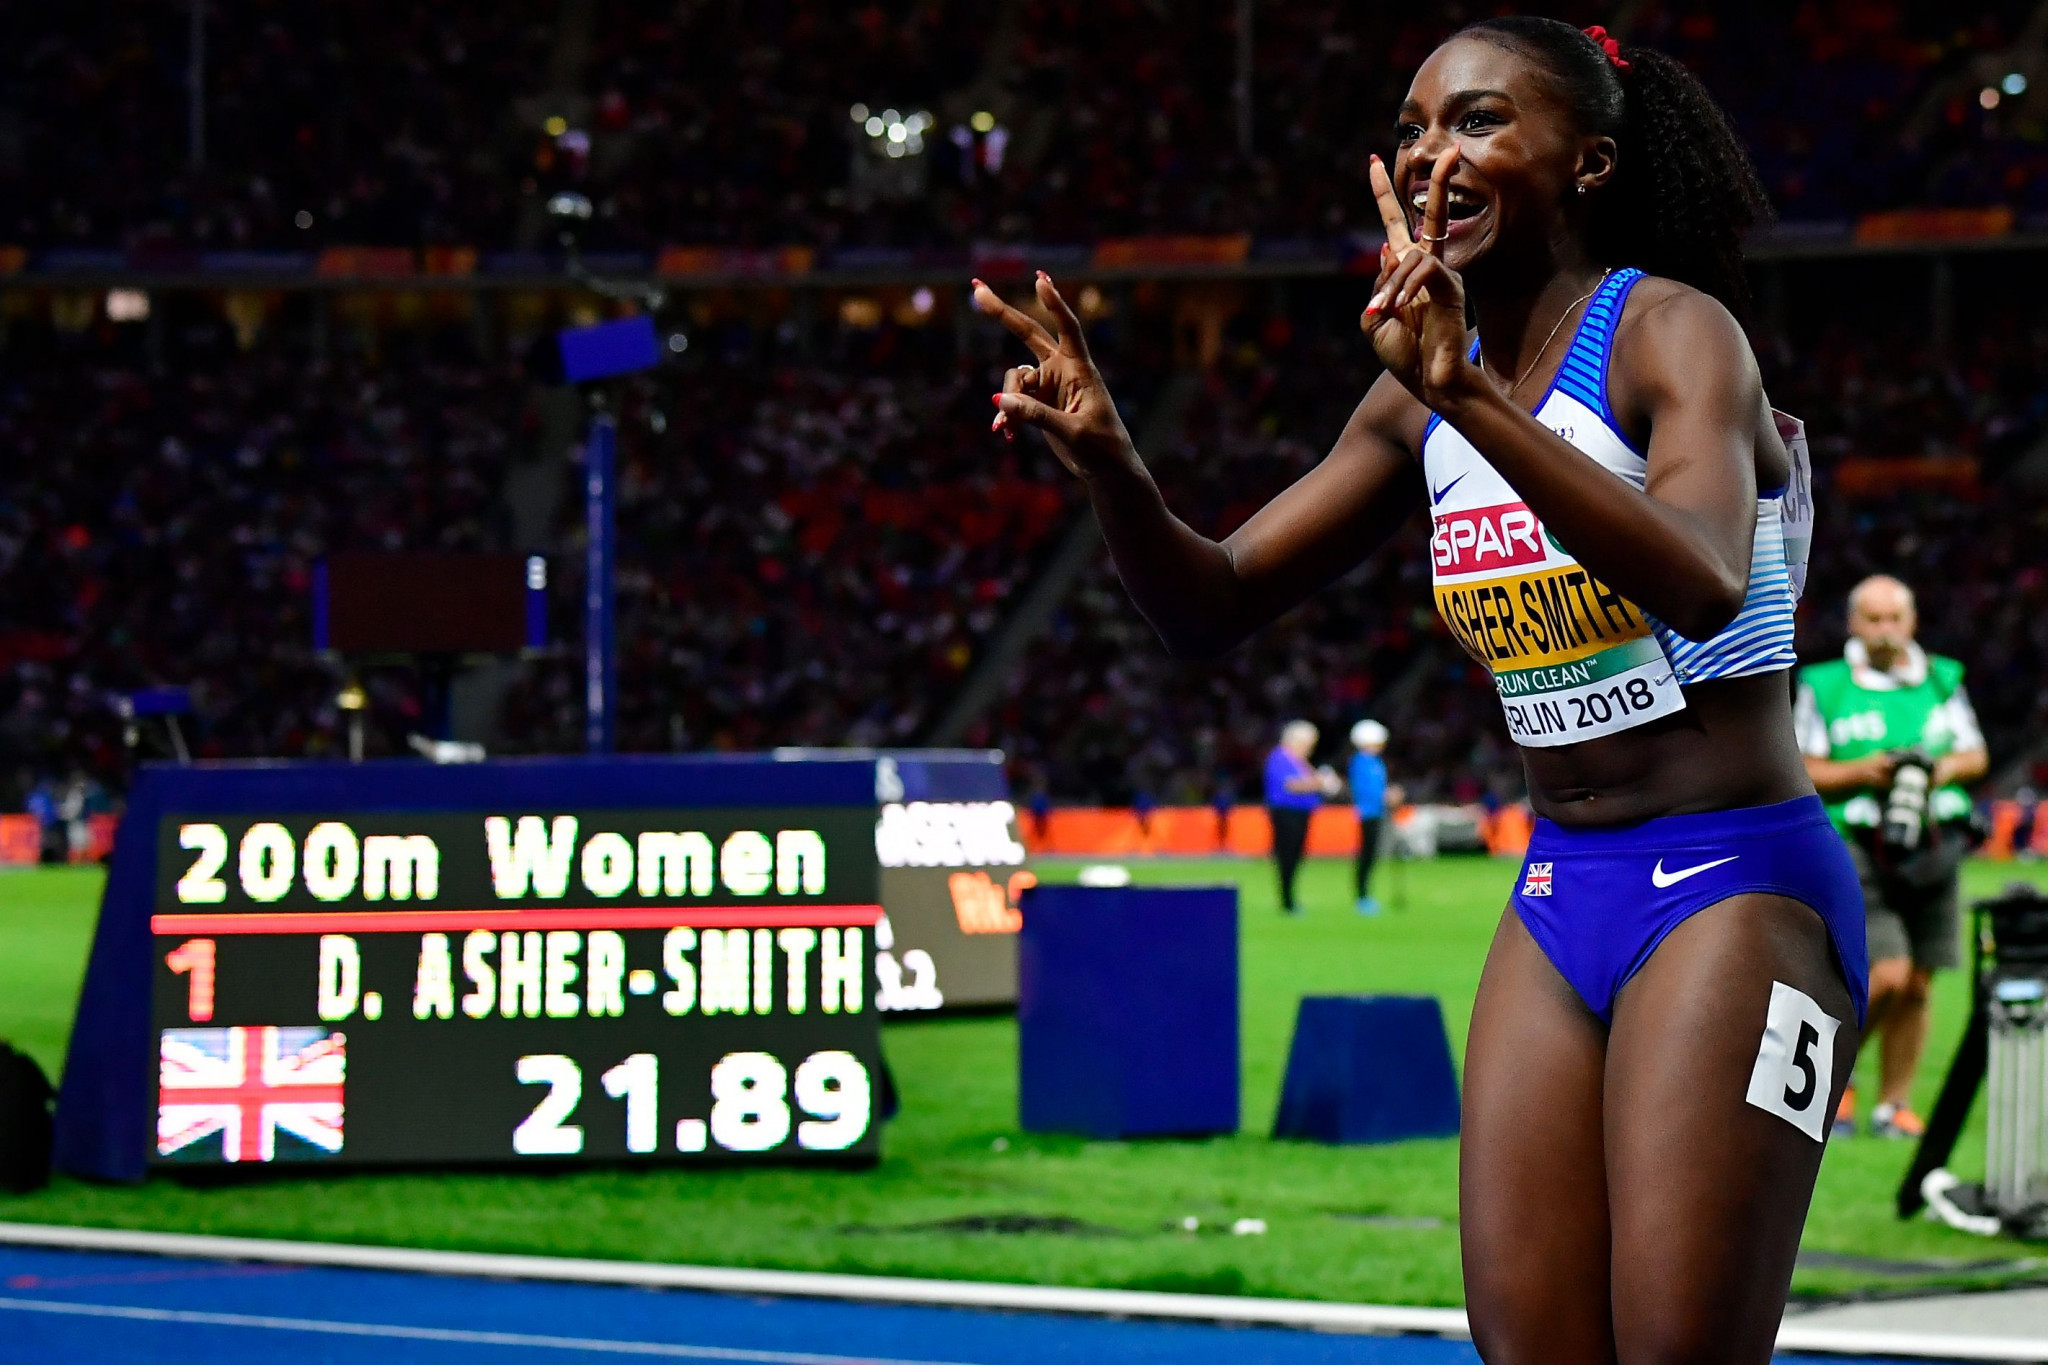 British athlete Dina Asher-Smith won the sprint triple crown in Berlin, taking the 100m, 200m and 4x100m relay ©Getty Images